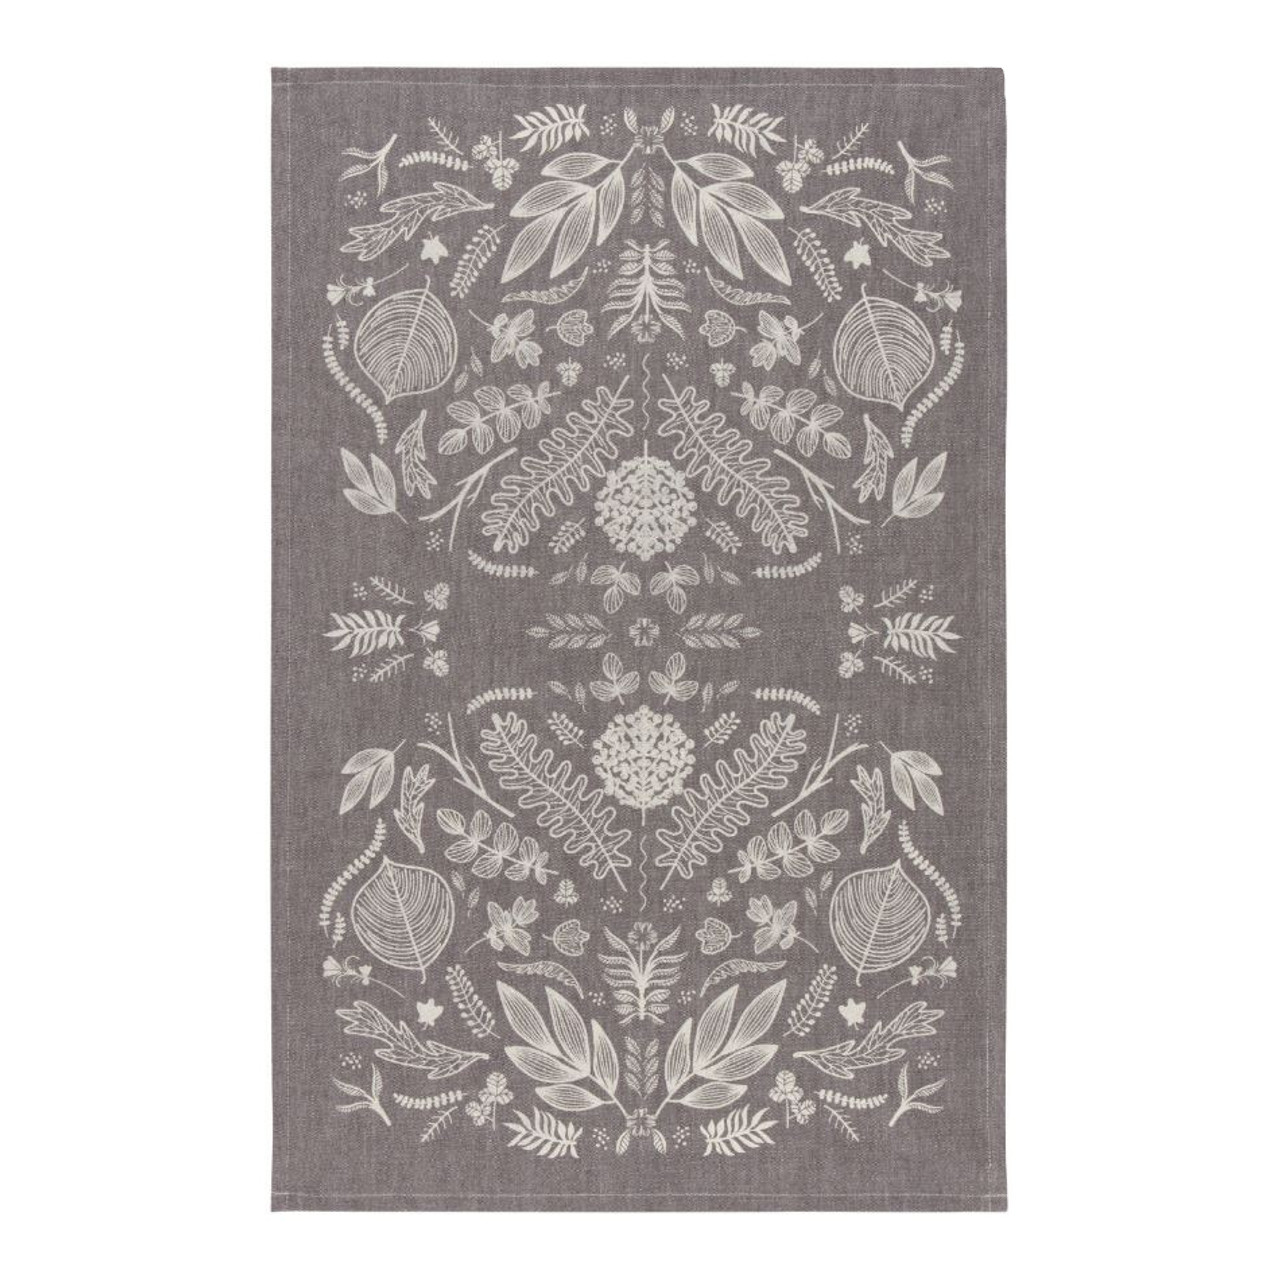 DISHTOWEL - LAUREL